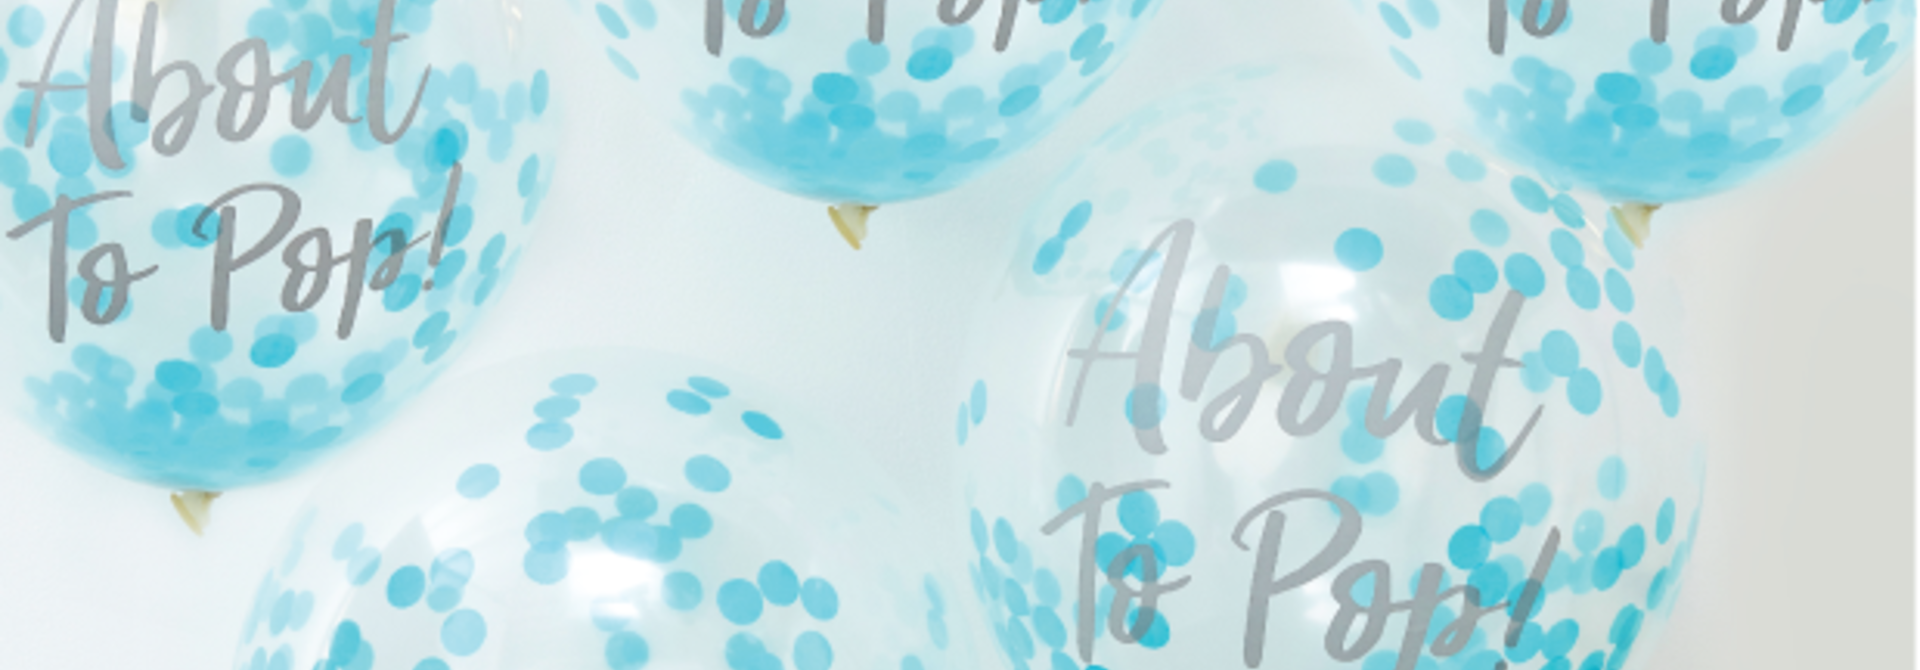 Confetti ballonnen about to pop blauw  - Ginger Ray